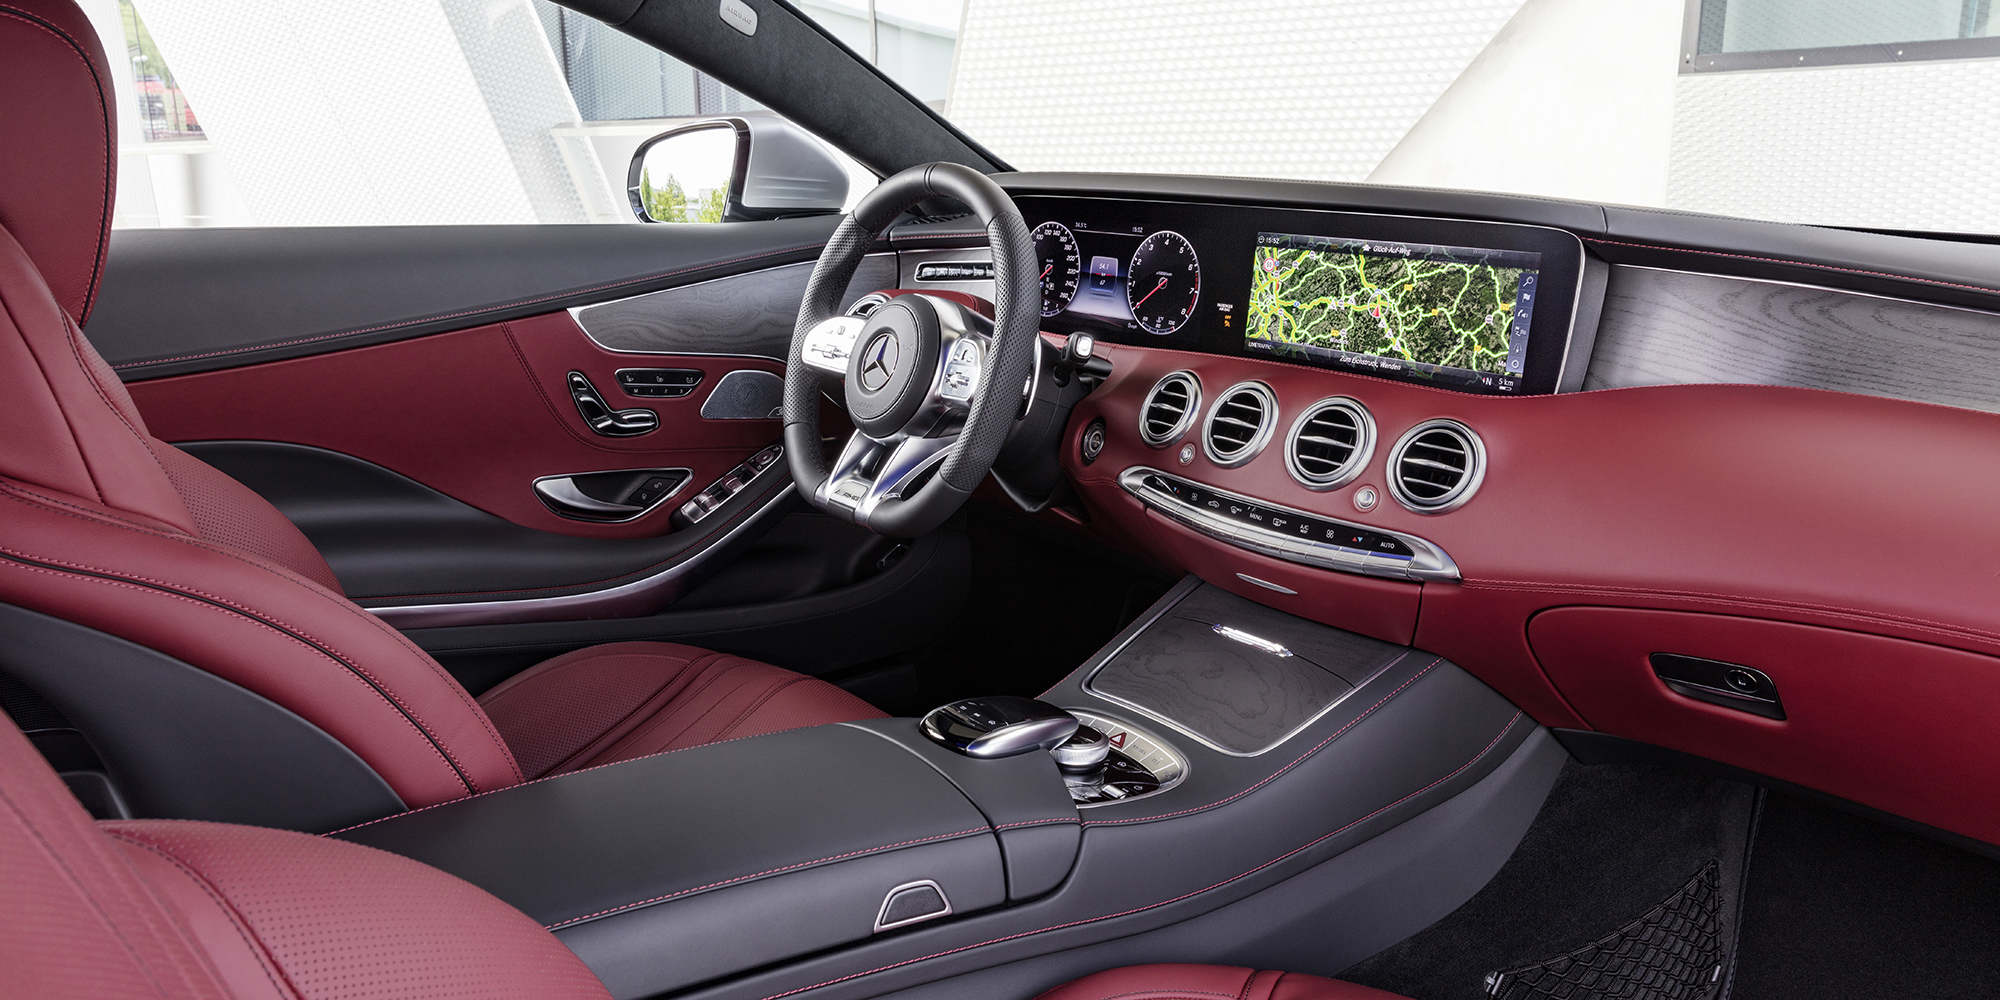 2018 mercedes benz s class coupe cabriolet revealed here in april 2018 photos 1 of 31. Black Bedroom Furniture Sets. Home Design Ideas